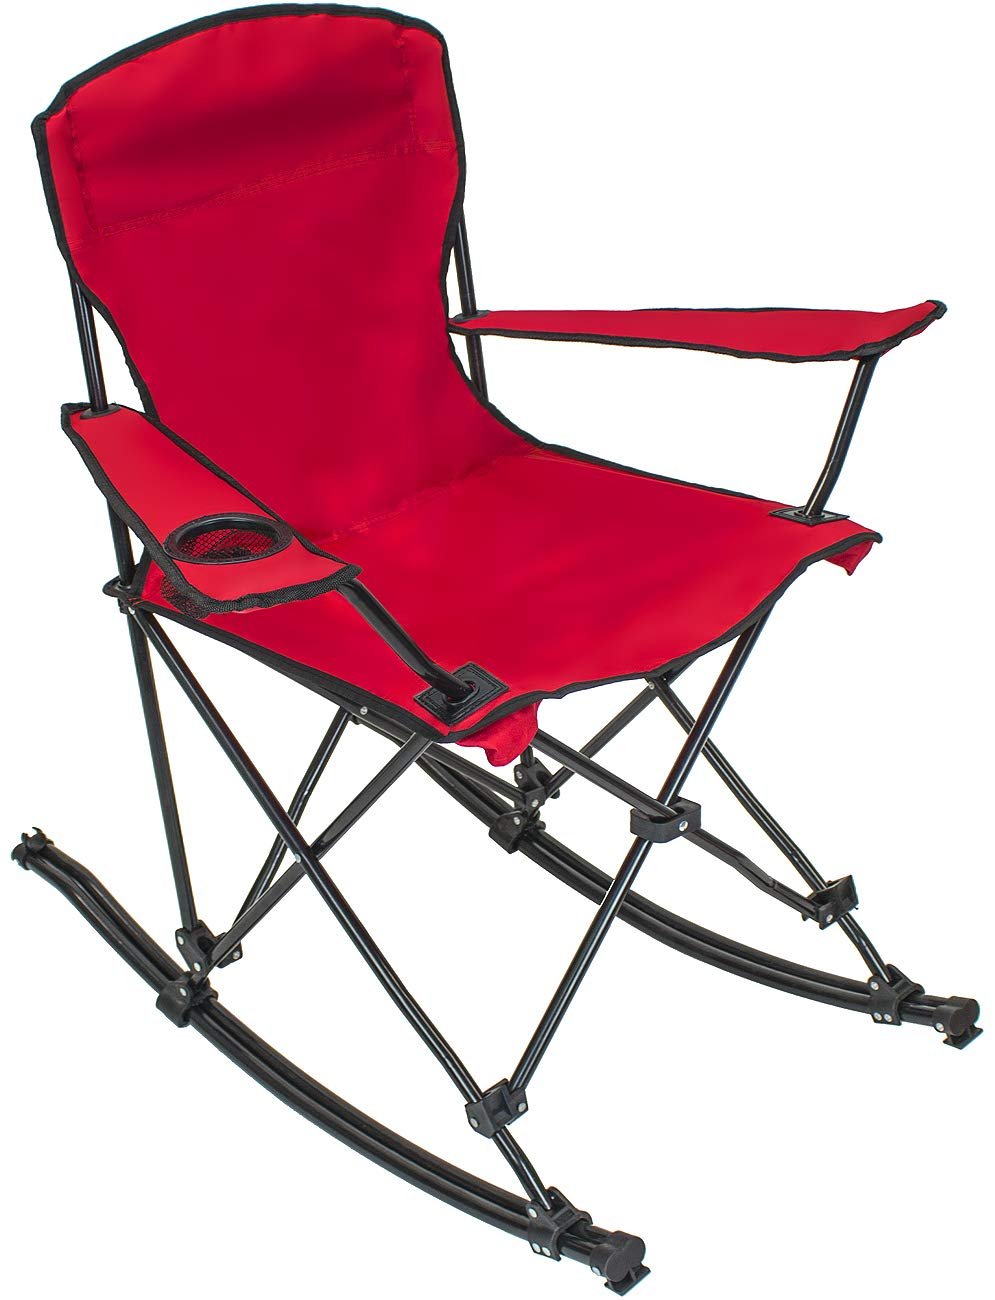 Sorbus Quad Rocking Chair with Cup Holder Cooler, Foldable Frame, Portable Carry Bag, Recliner Chair Great Outdoor Chair for Camping, Sporting Events, Travel, Backyard, Patio (Rocking Chair - Red) by Sorbus